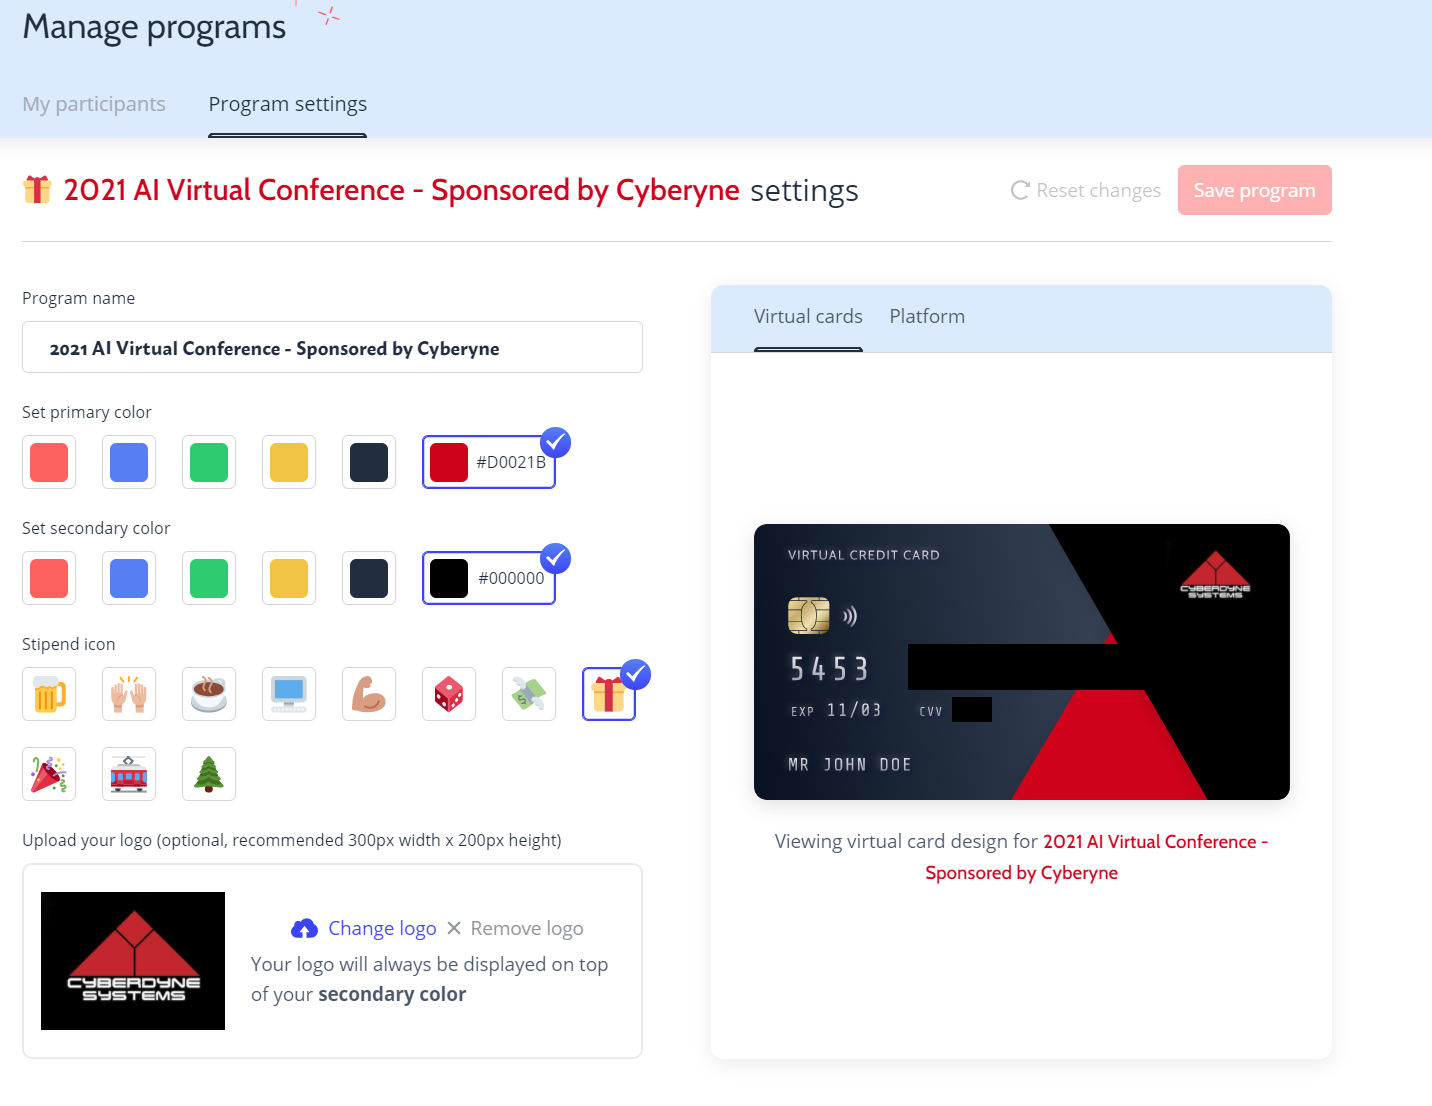 A branded virtual credit card that can be sent out to support your event experience